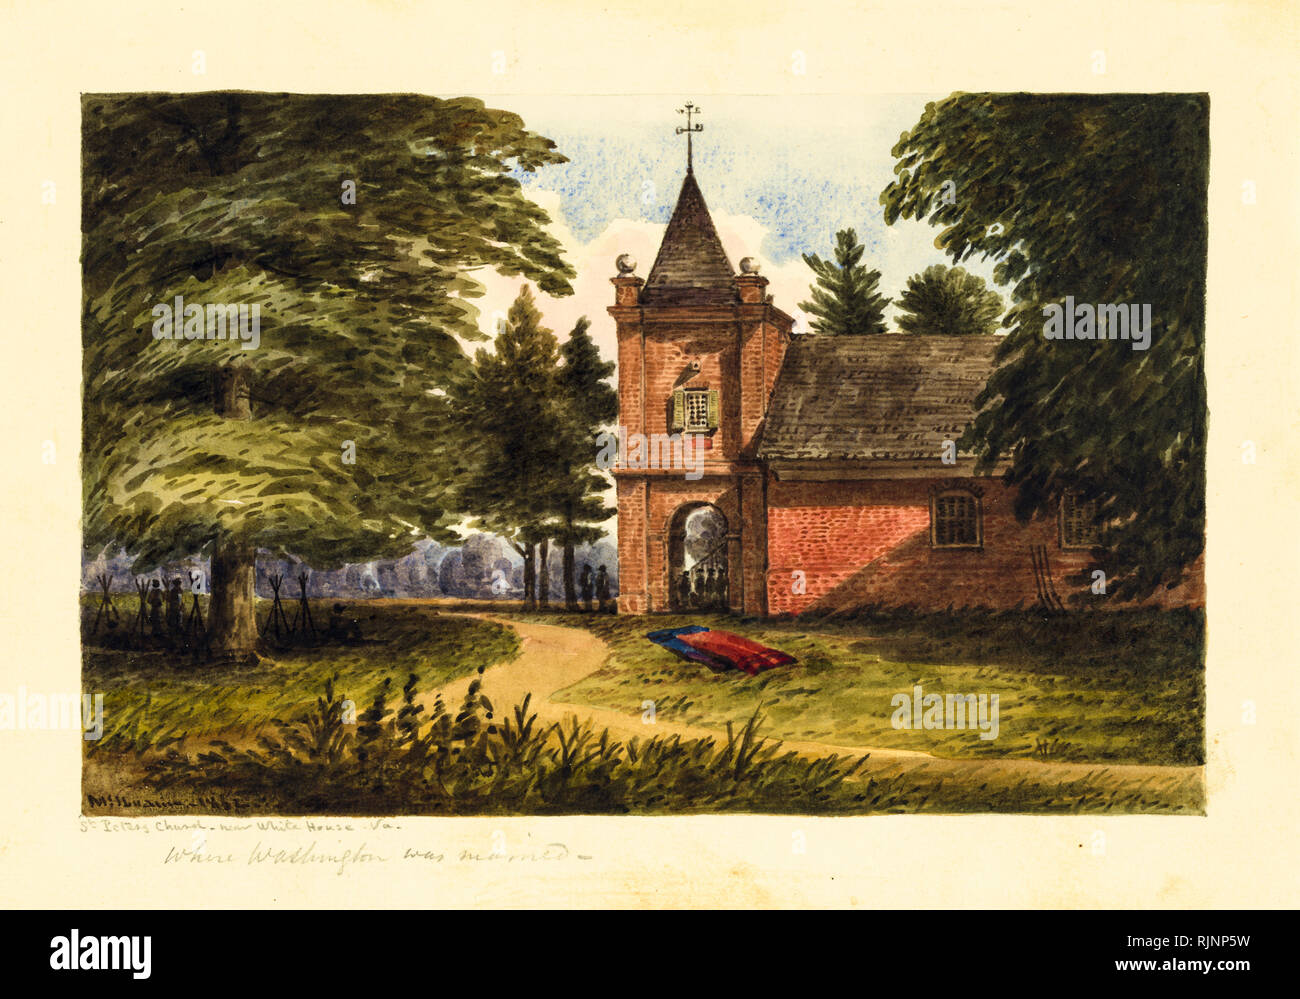 American Civil War painting, St. Peters Church, near White House, Virginia USA, Watercolour, William McIlvaine 1862 - Stock Image